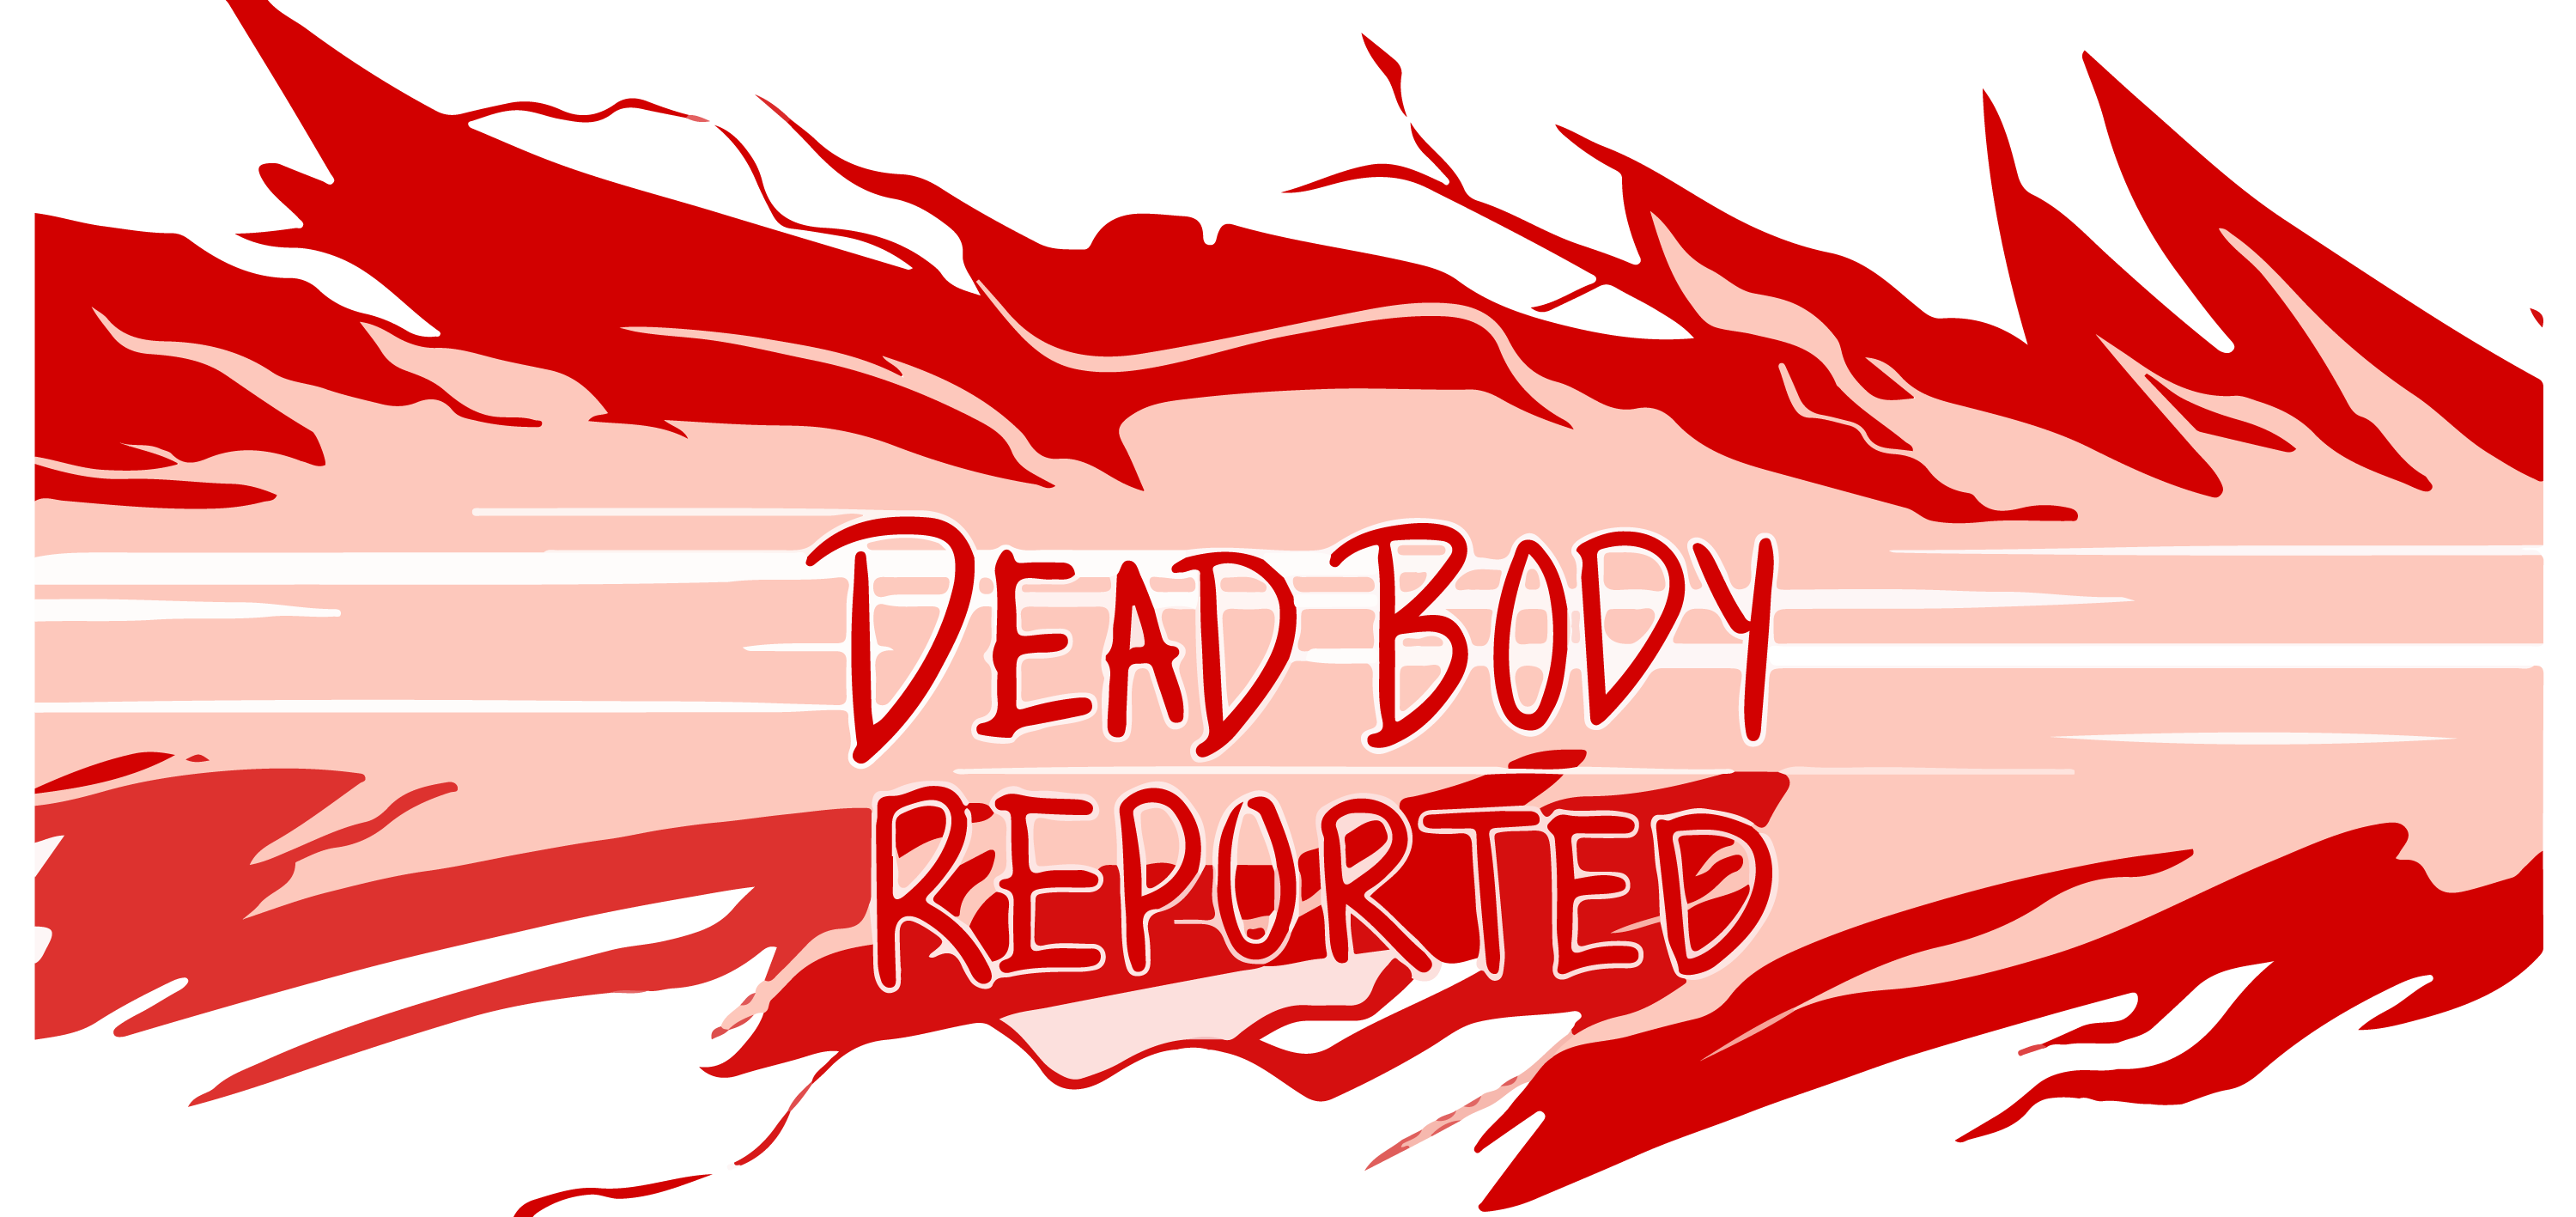 dead body reported vector